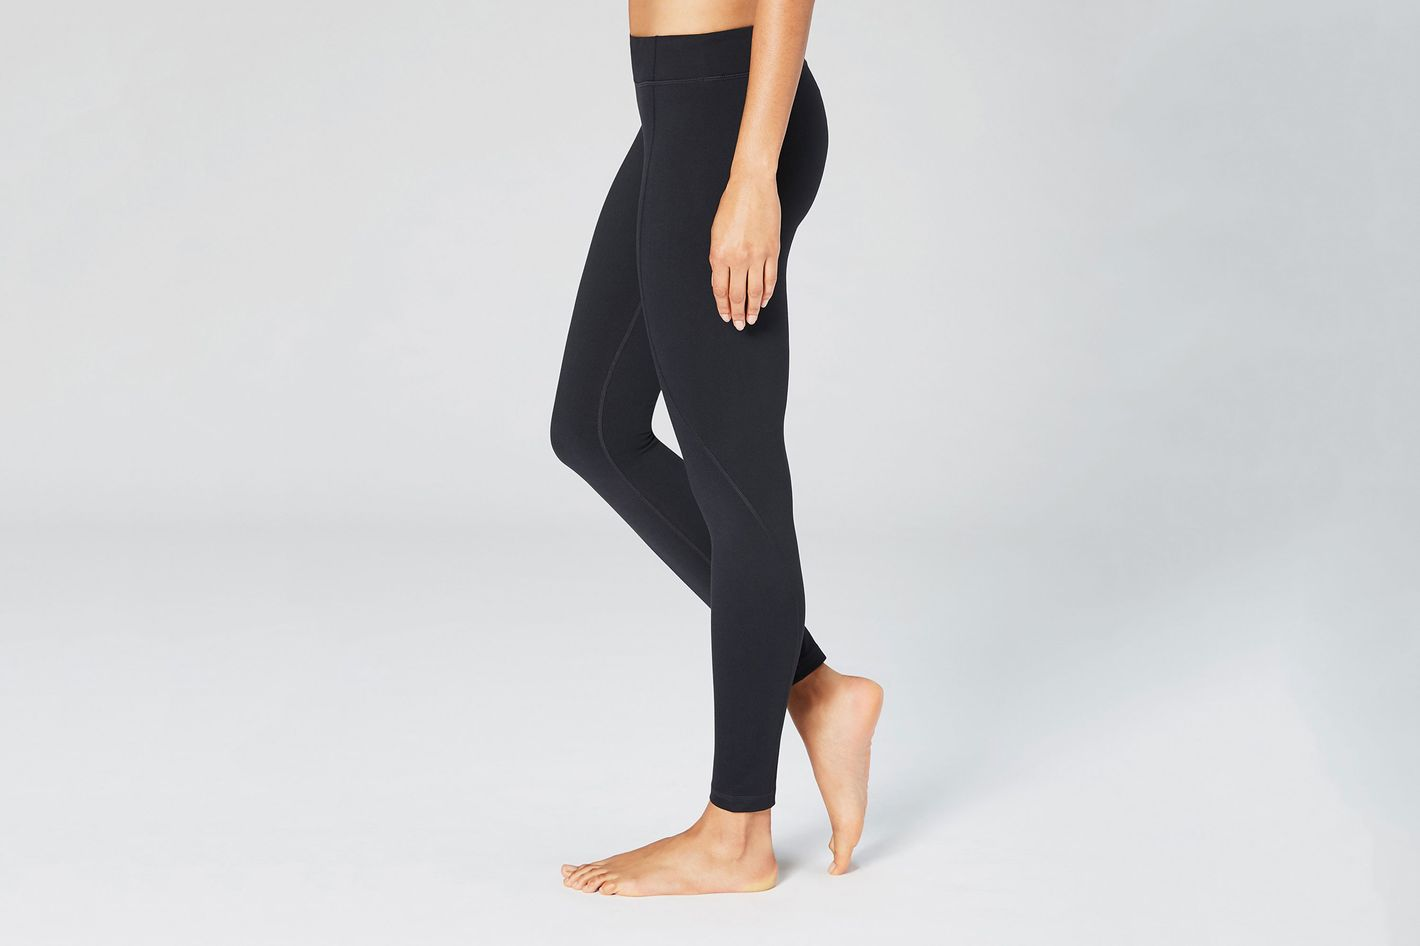 Core 10 Women's 'Build Your Own' Yoga Pant